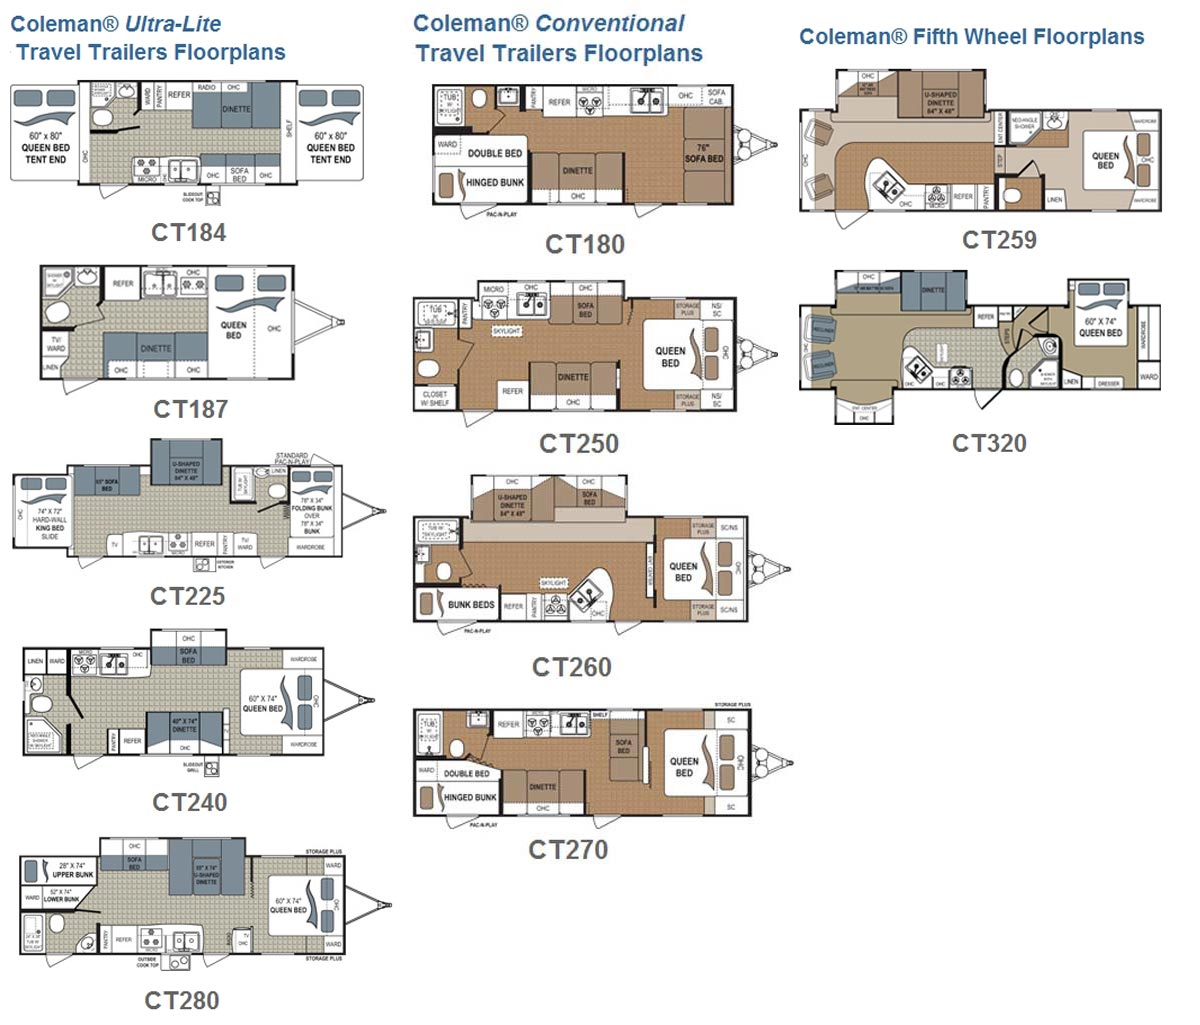 Coleman Travel Trailer and Fifth Wheel RVs - floorplans